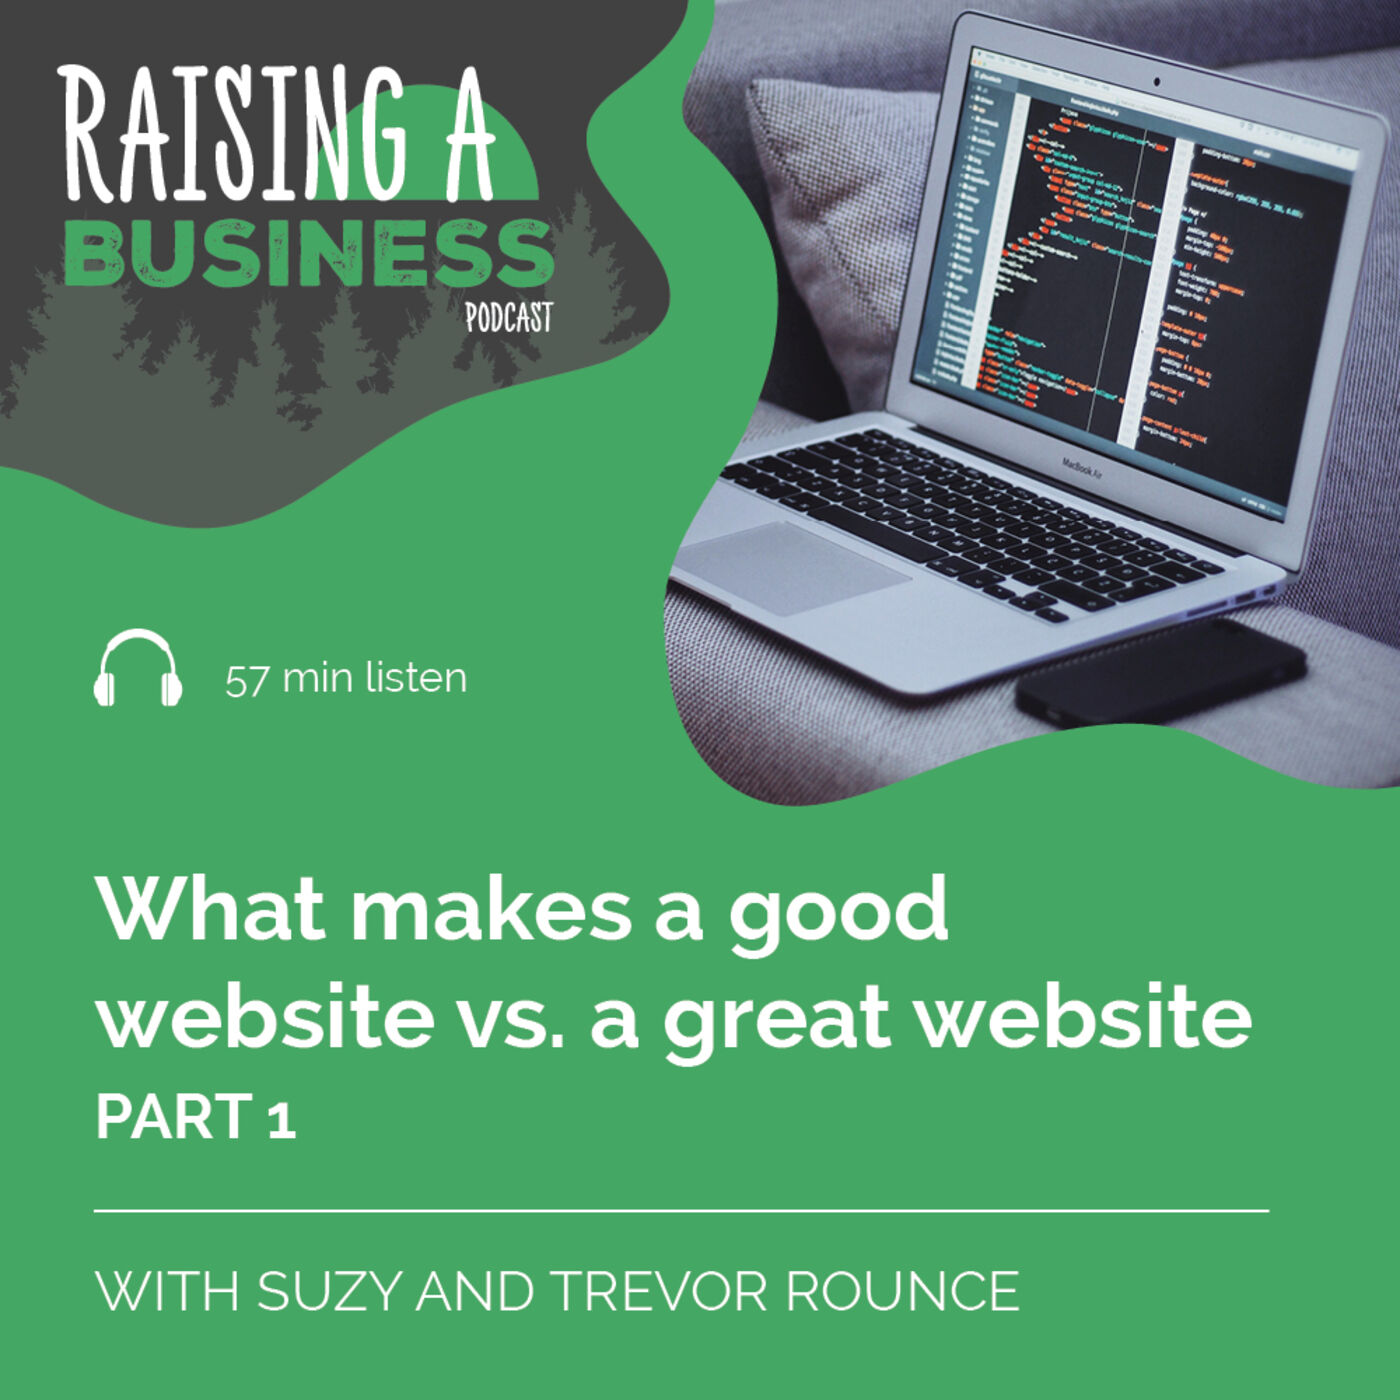 RAB 008 What makes a good website vs. a great website - part 1